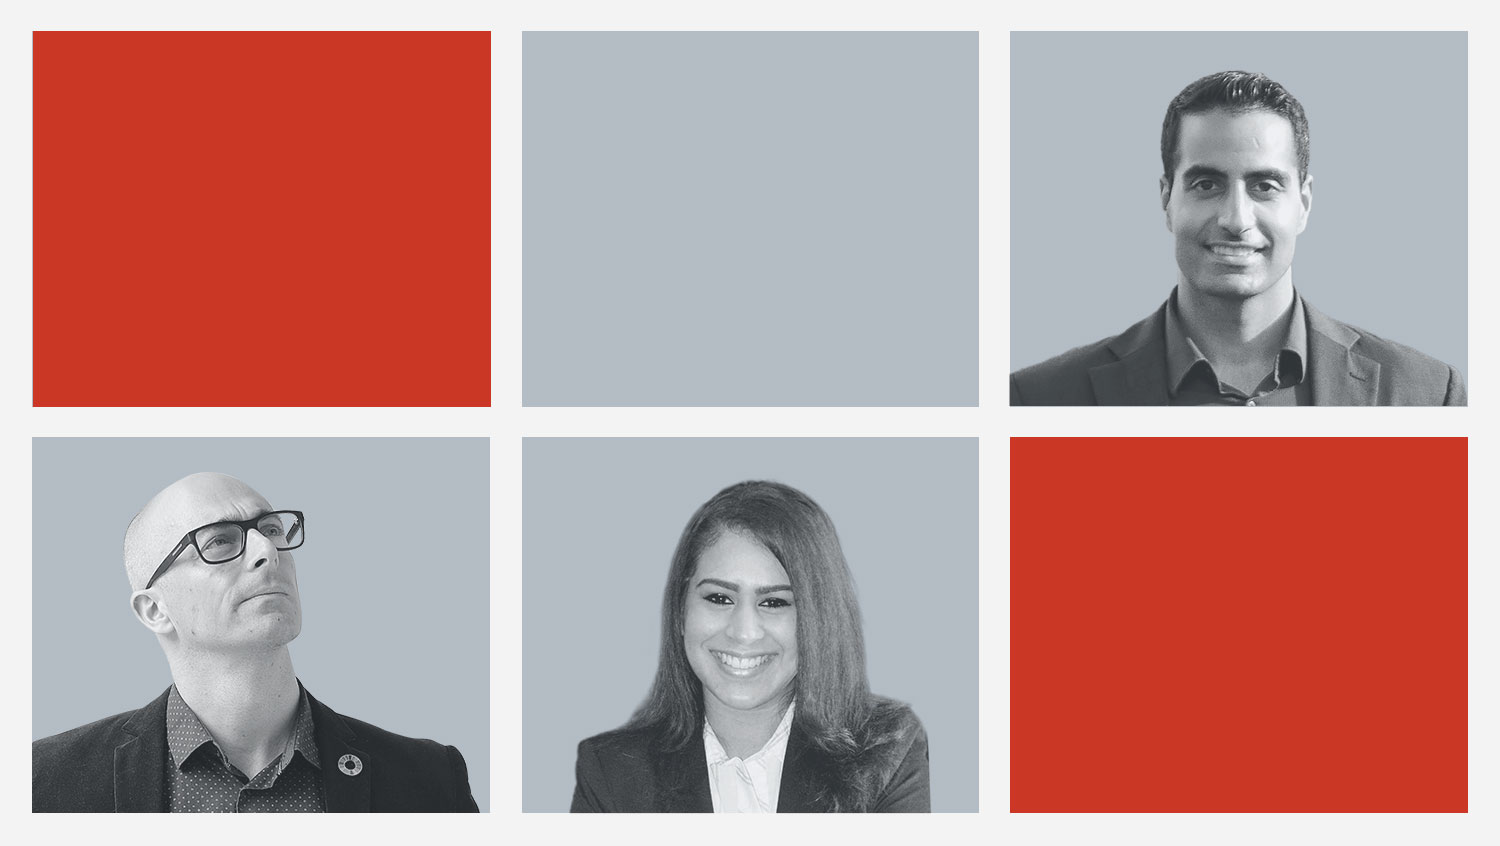 Works Design's 2020 Sustainability Reporting Trends team of researchers: Uzair Jaffer (top right), Wesley Gee (bottom left) and Aishwarya Ramchandran (bottom right)